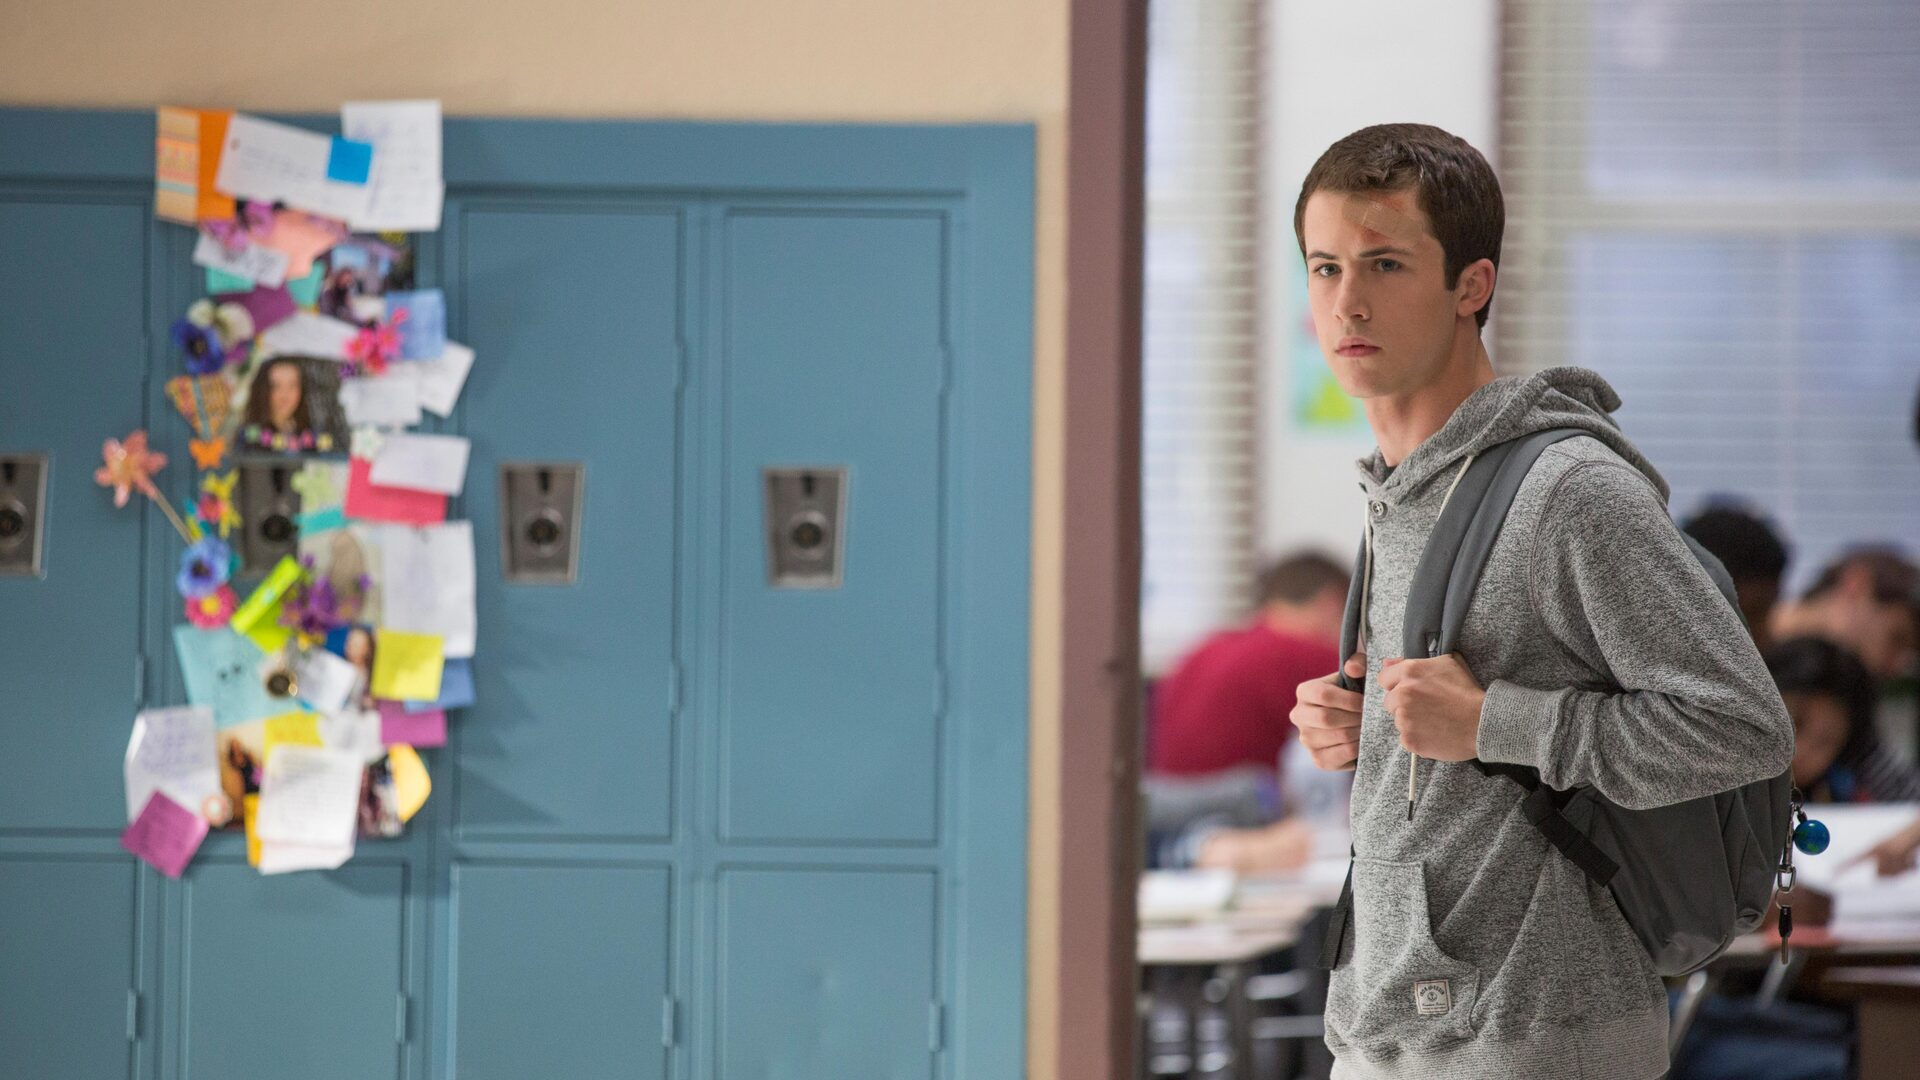 Download clay jensen in 13 reasons why hd 4k wallpapers in 1920x1080 screen resolution - 13 reasons why download ...